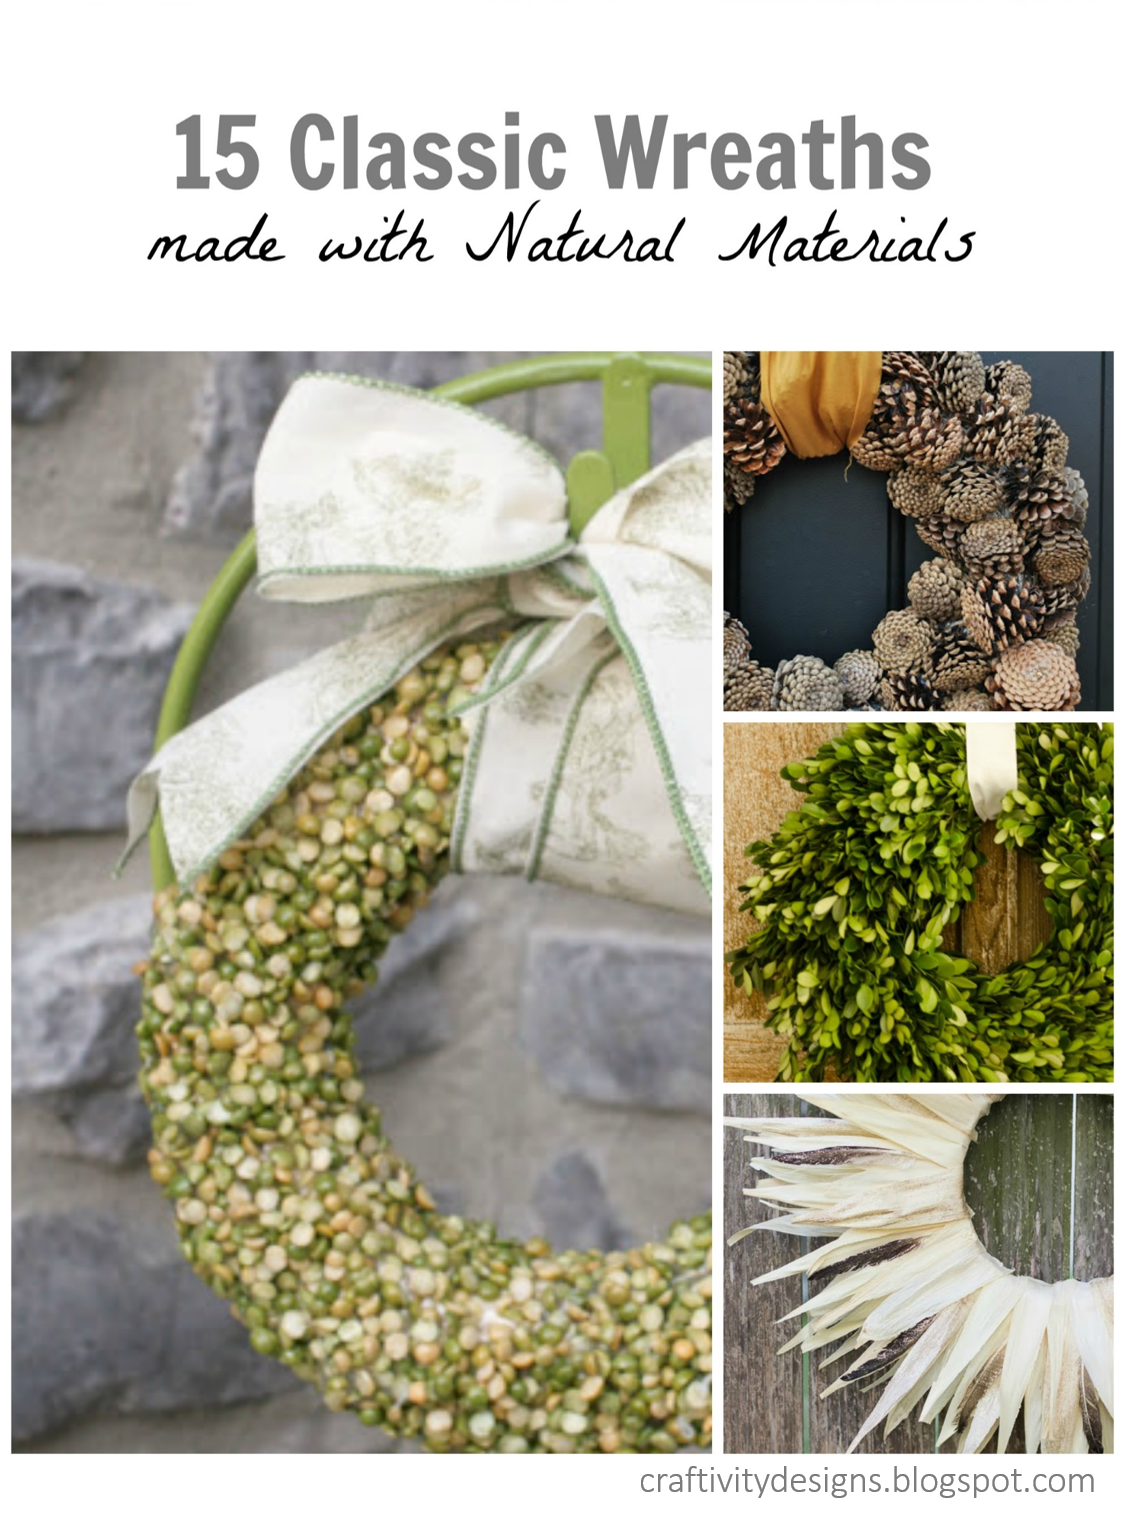 15 Classic Wreaths made with Natural Materials by @CraftivityD